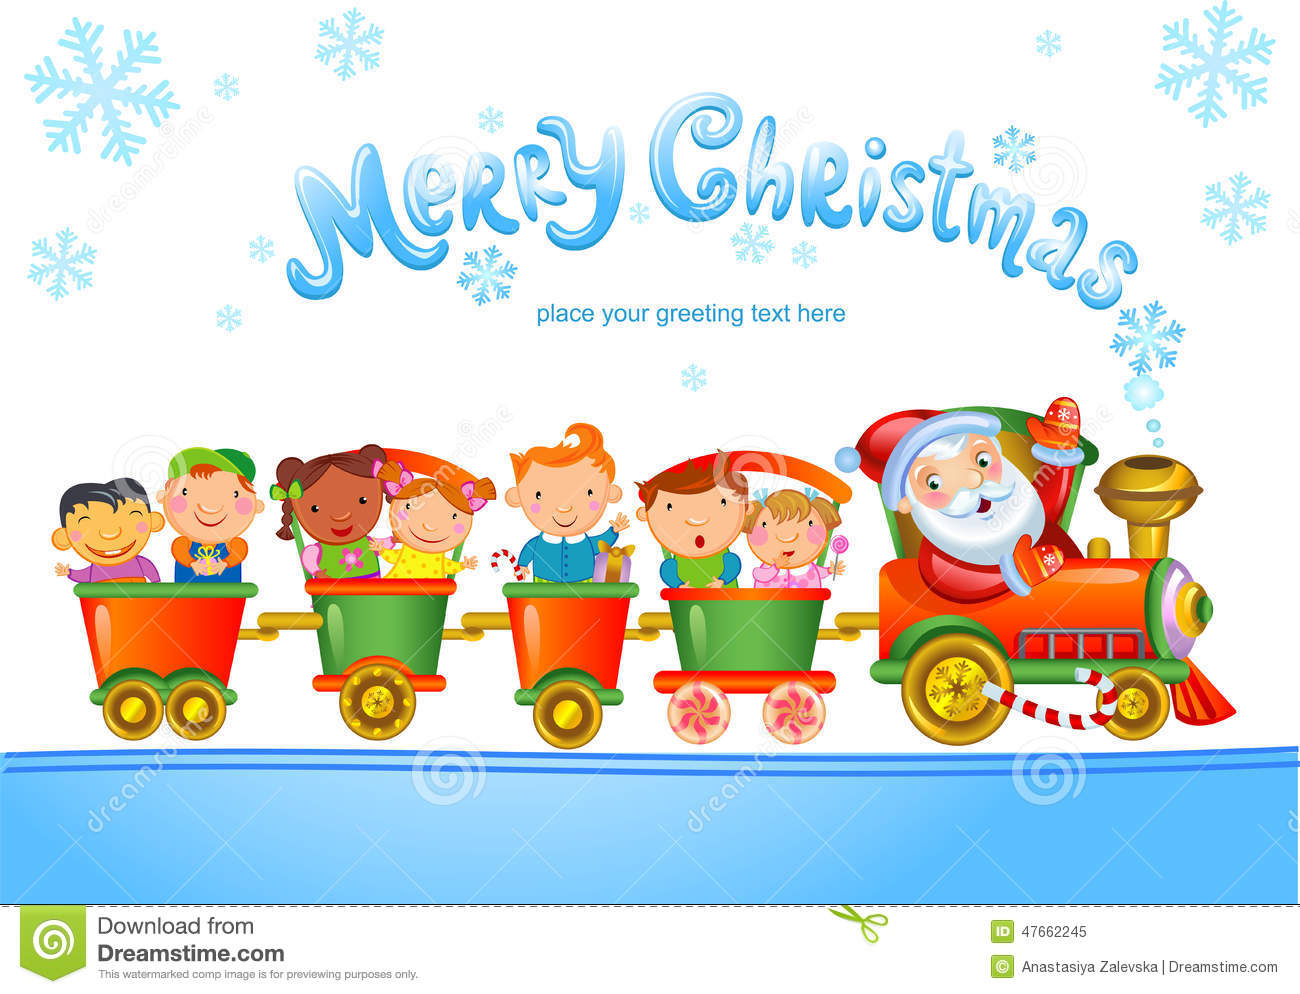 Toy Train With Santa Claus And Kids. Stock Vector - Illustration of ...